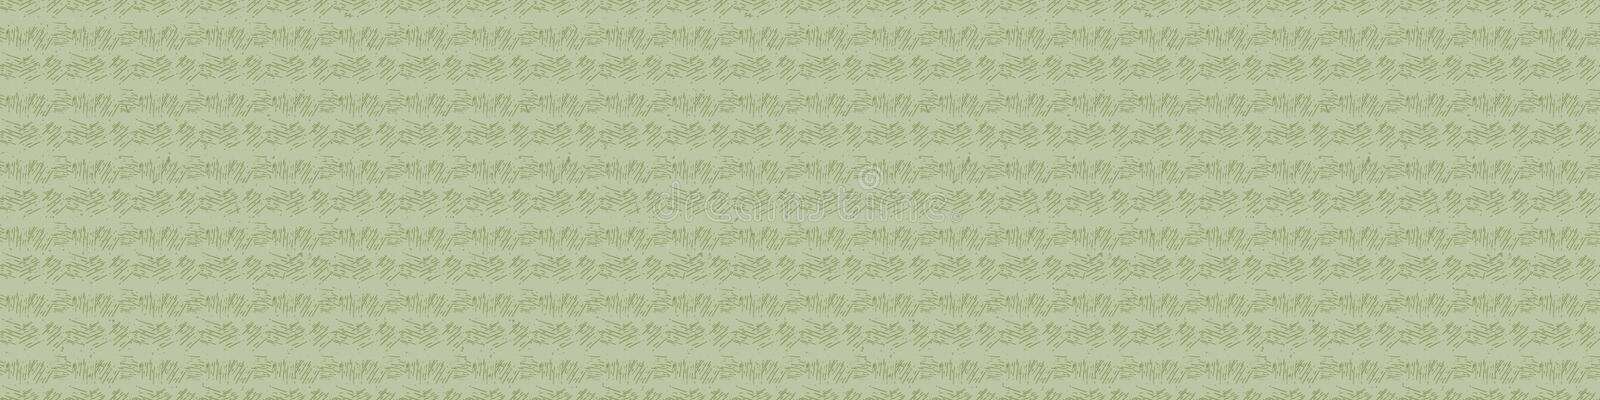 Hand drawn ethnic horizontal stripe seamless border pattern. Modern lines hand drawn in homespun softgrass green neutral tones. Stationery zakka craft washi stock illustration